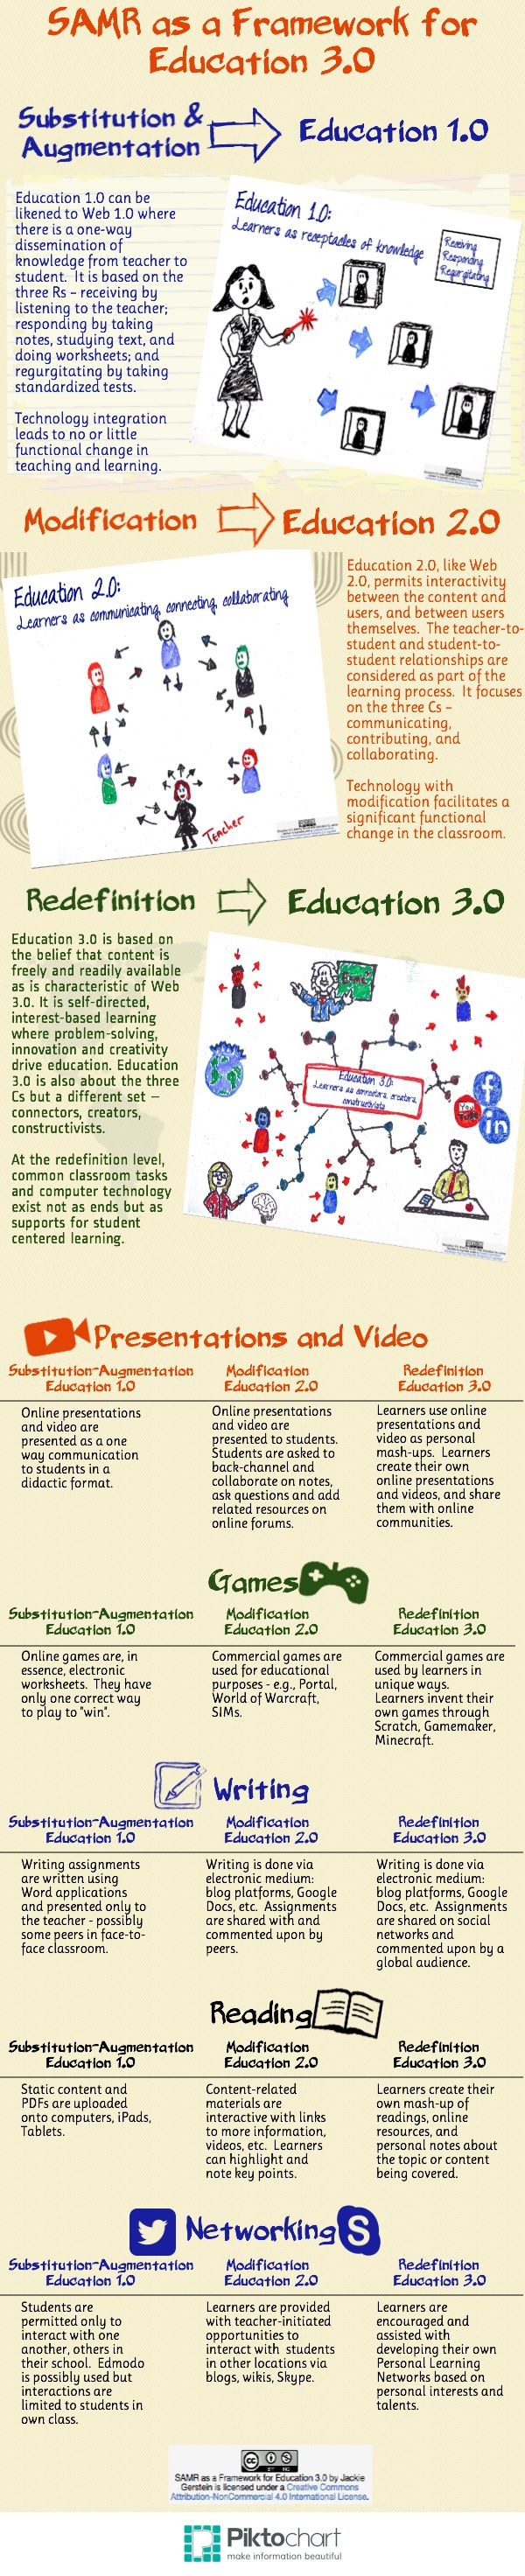 SAMR as a framework for Education 3.0 Internet Site, Samr Models, Teaching Technology Ipad,  Website, Education 3 0, Web Site, Education Technology, Samr Education3, Samr Framework